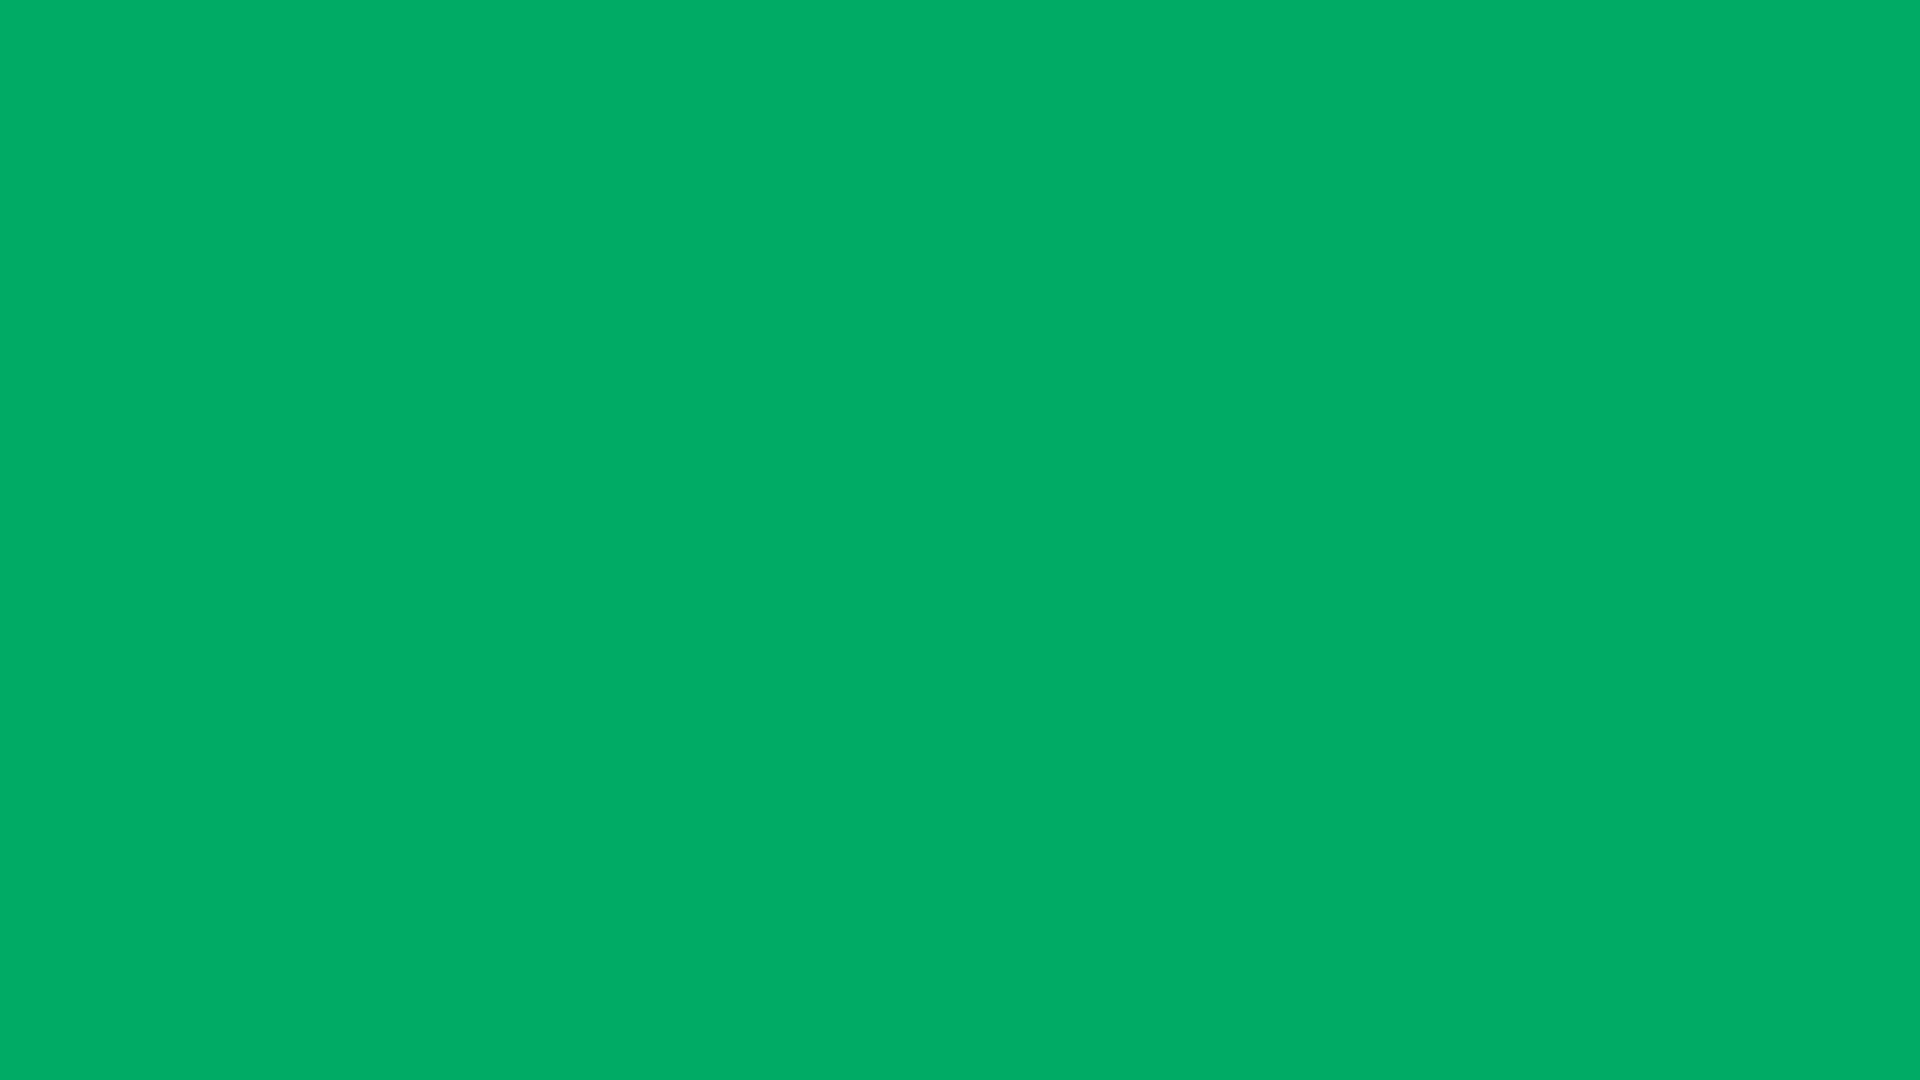 1920x1080 GO Green Solid Color Background